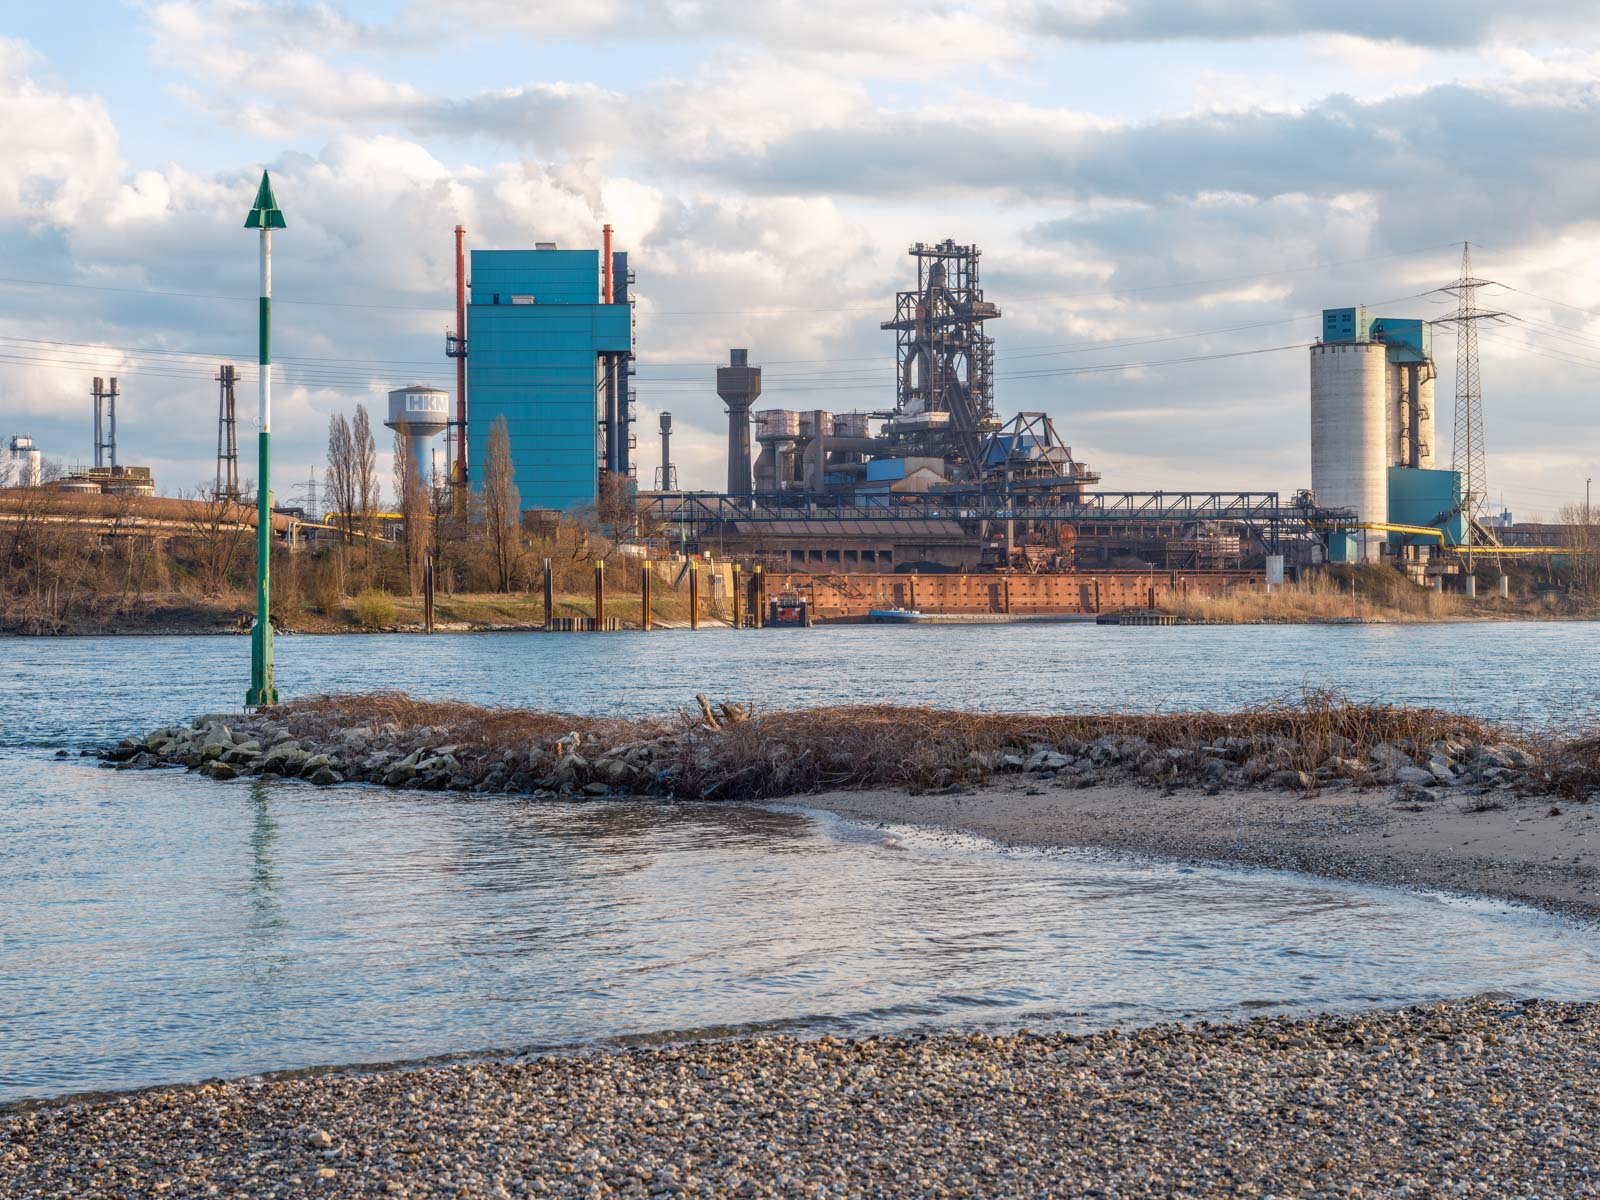 Krupp Mannesmann steelworks (HKM)  in Duisburg on the Rhine in the late afternoon in March 2021 (Germany).